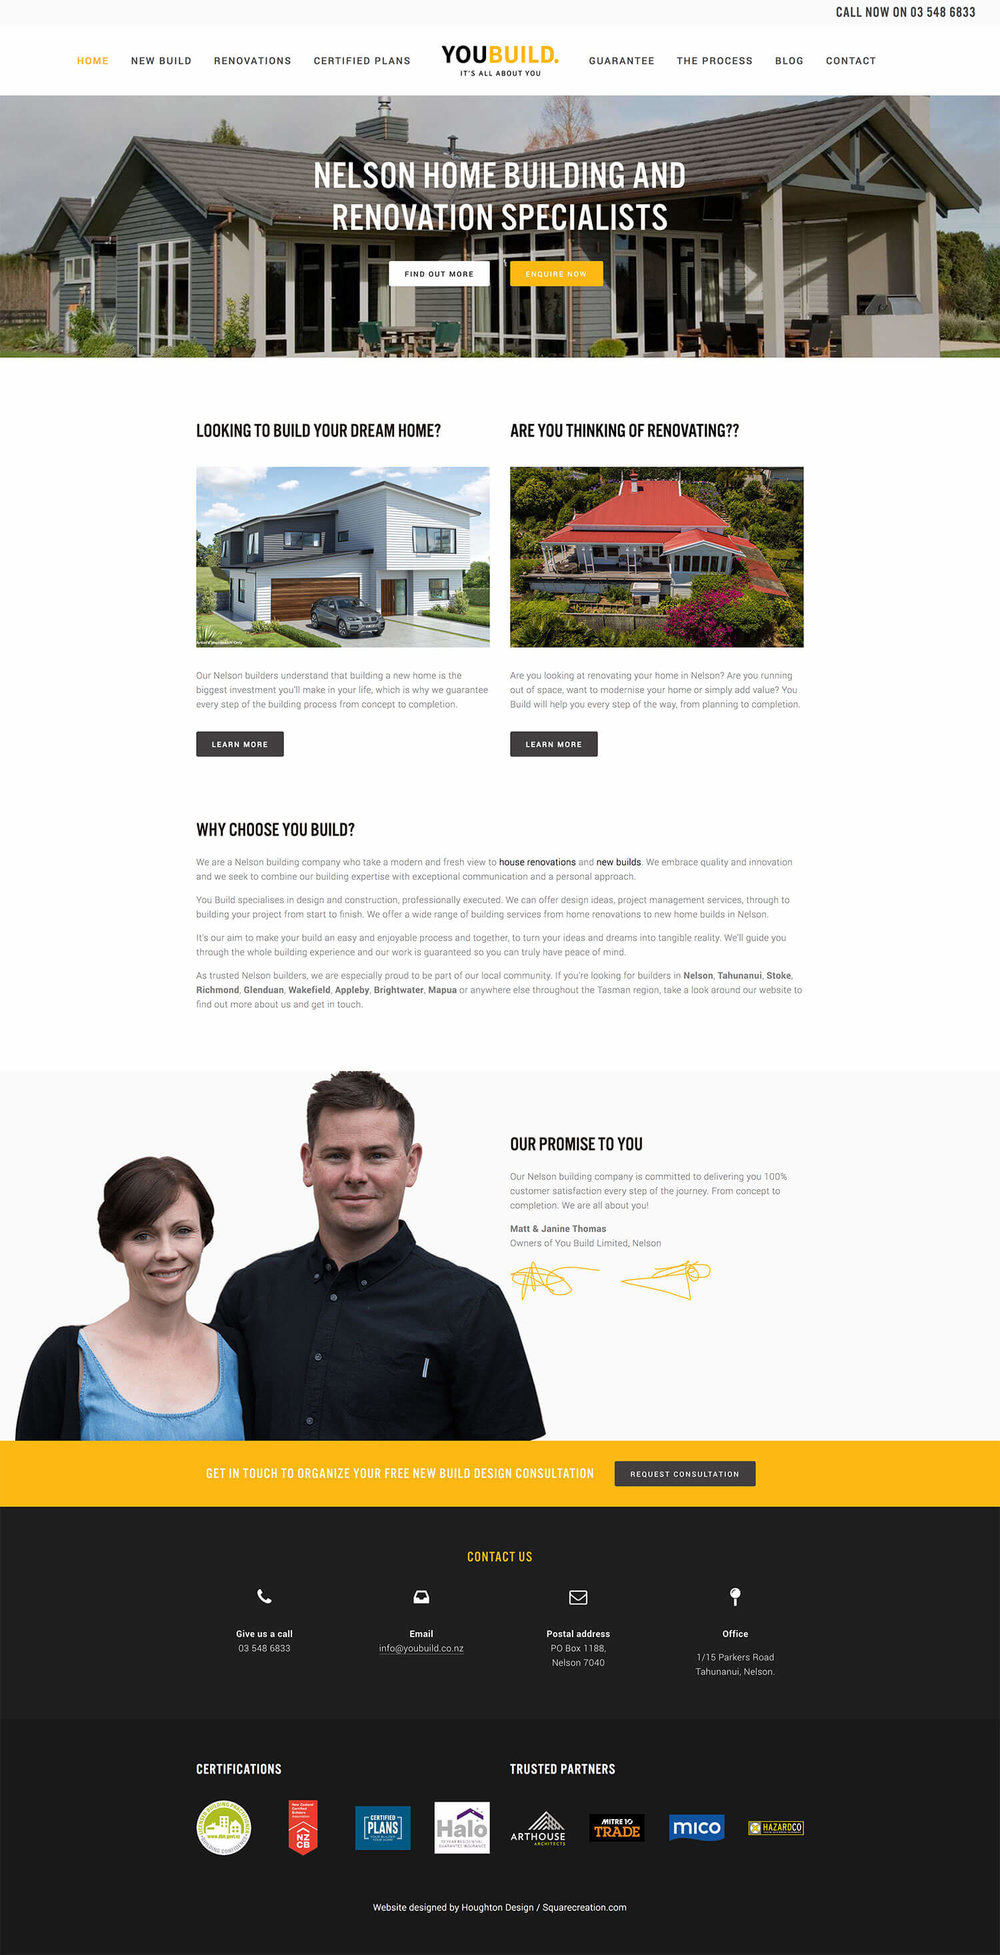 youbuild.co.nz home page